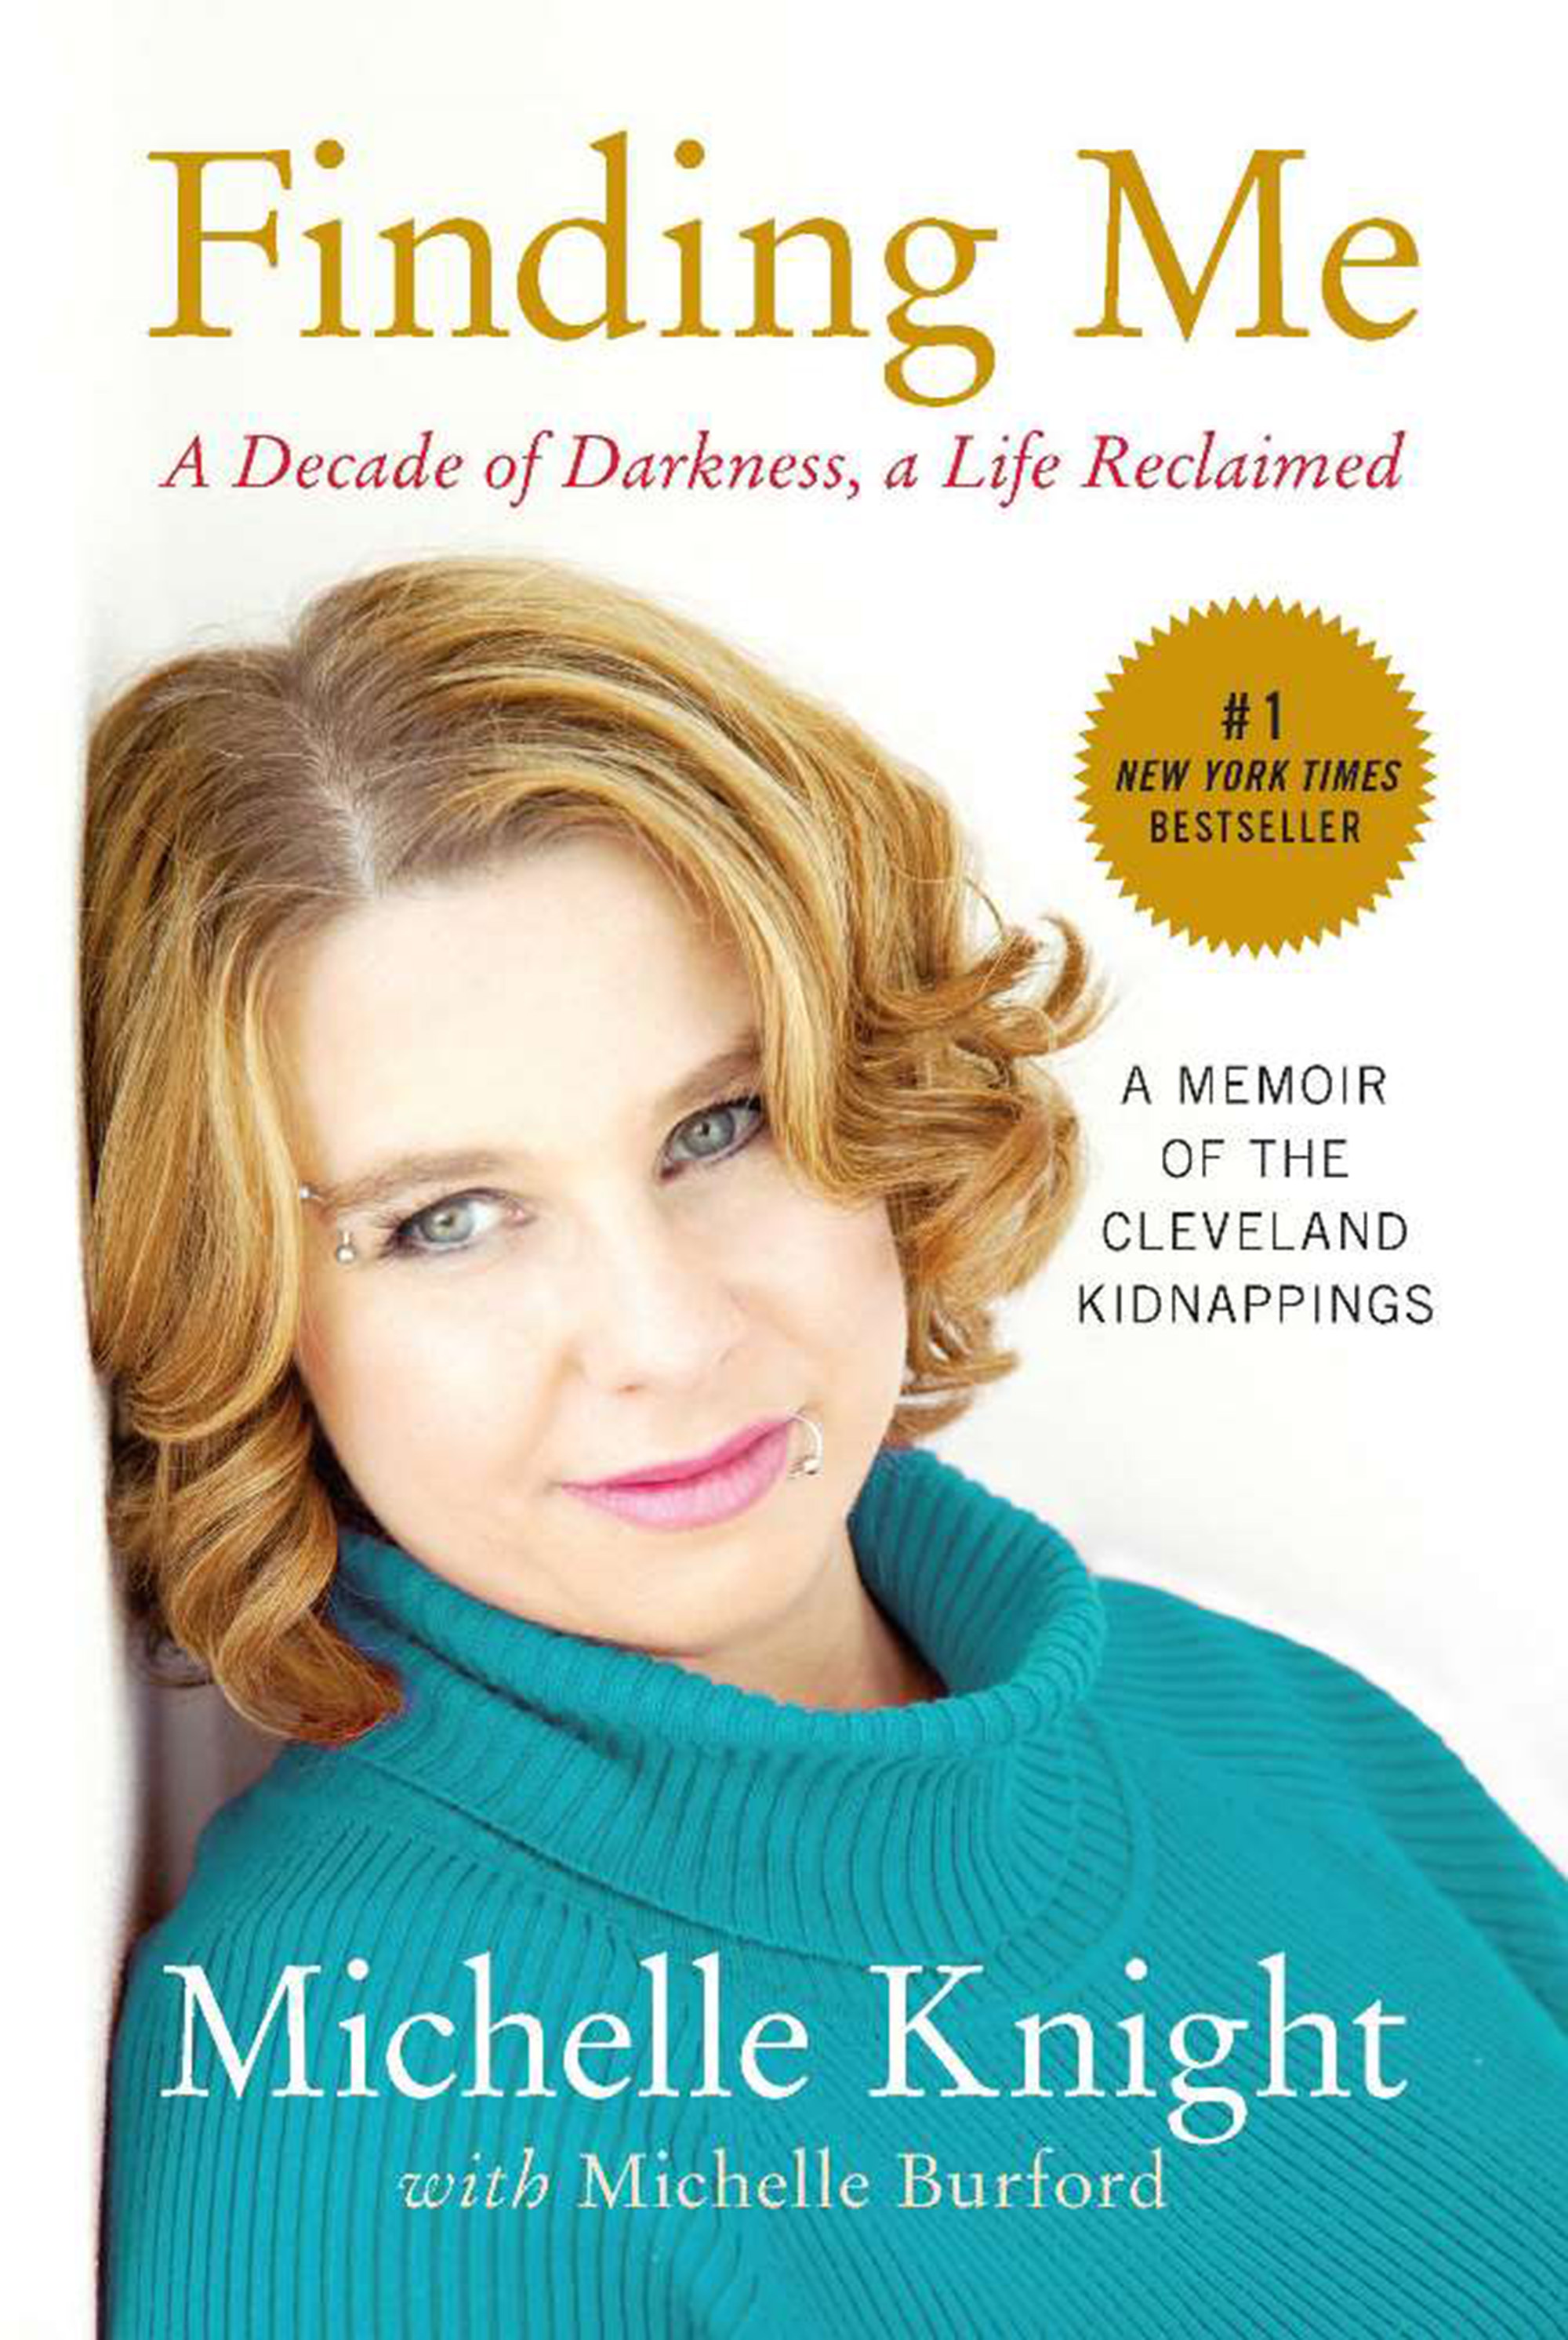 Finding Me A Decade of Darkness, a Life Reclaimed: A Memoir of the Cleveland Kidnappings